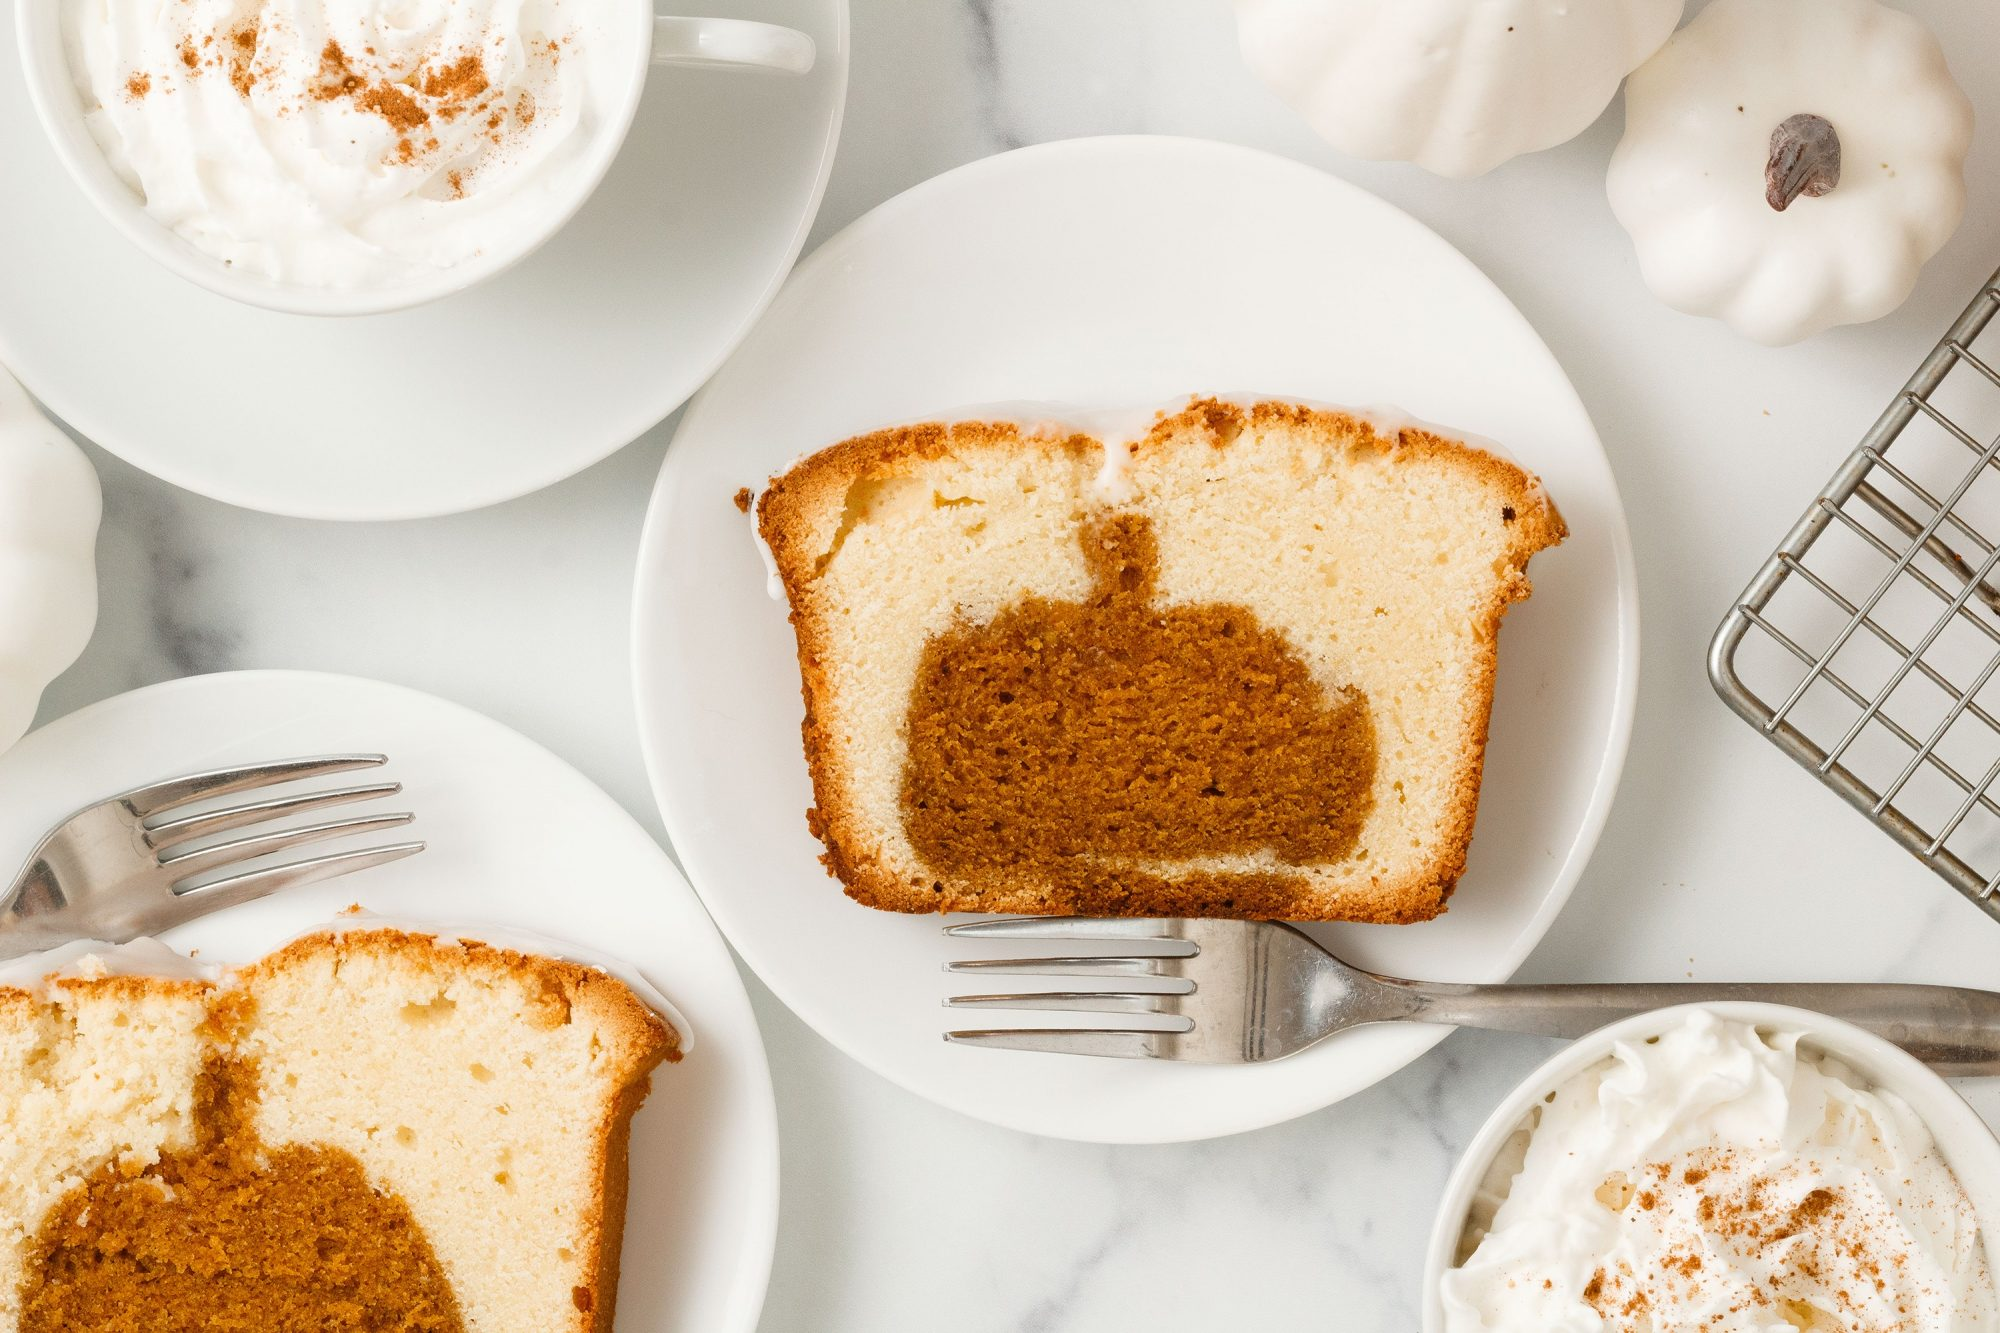 overhead shot of a slice of pound cake sliced to reveal a pumpkin-shaped pumpkin spice cake baked into it.